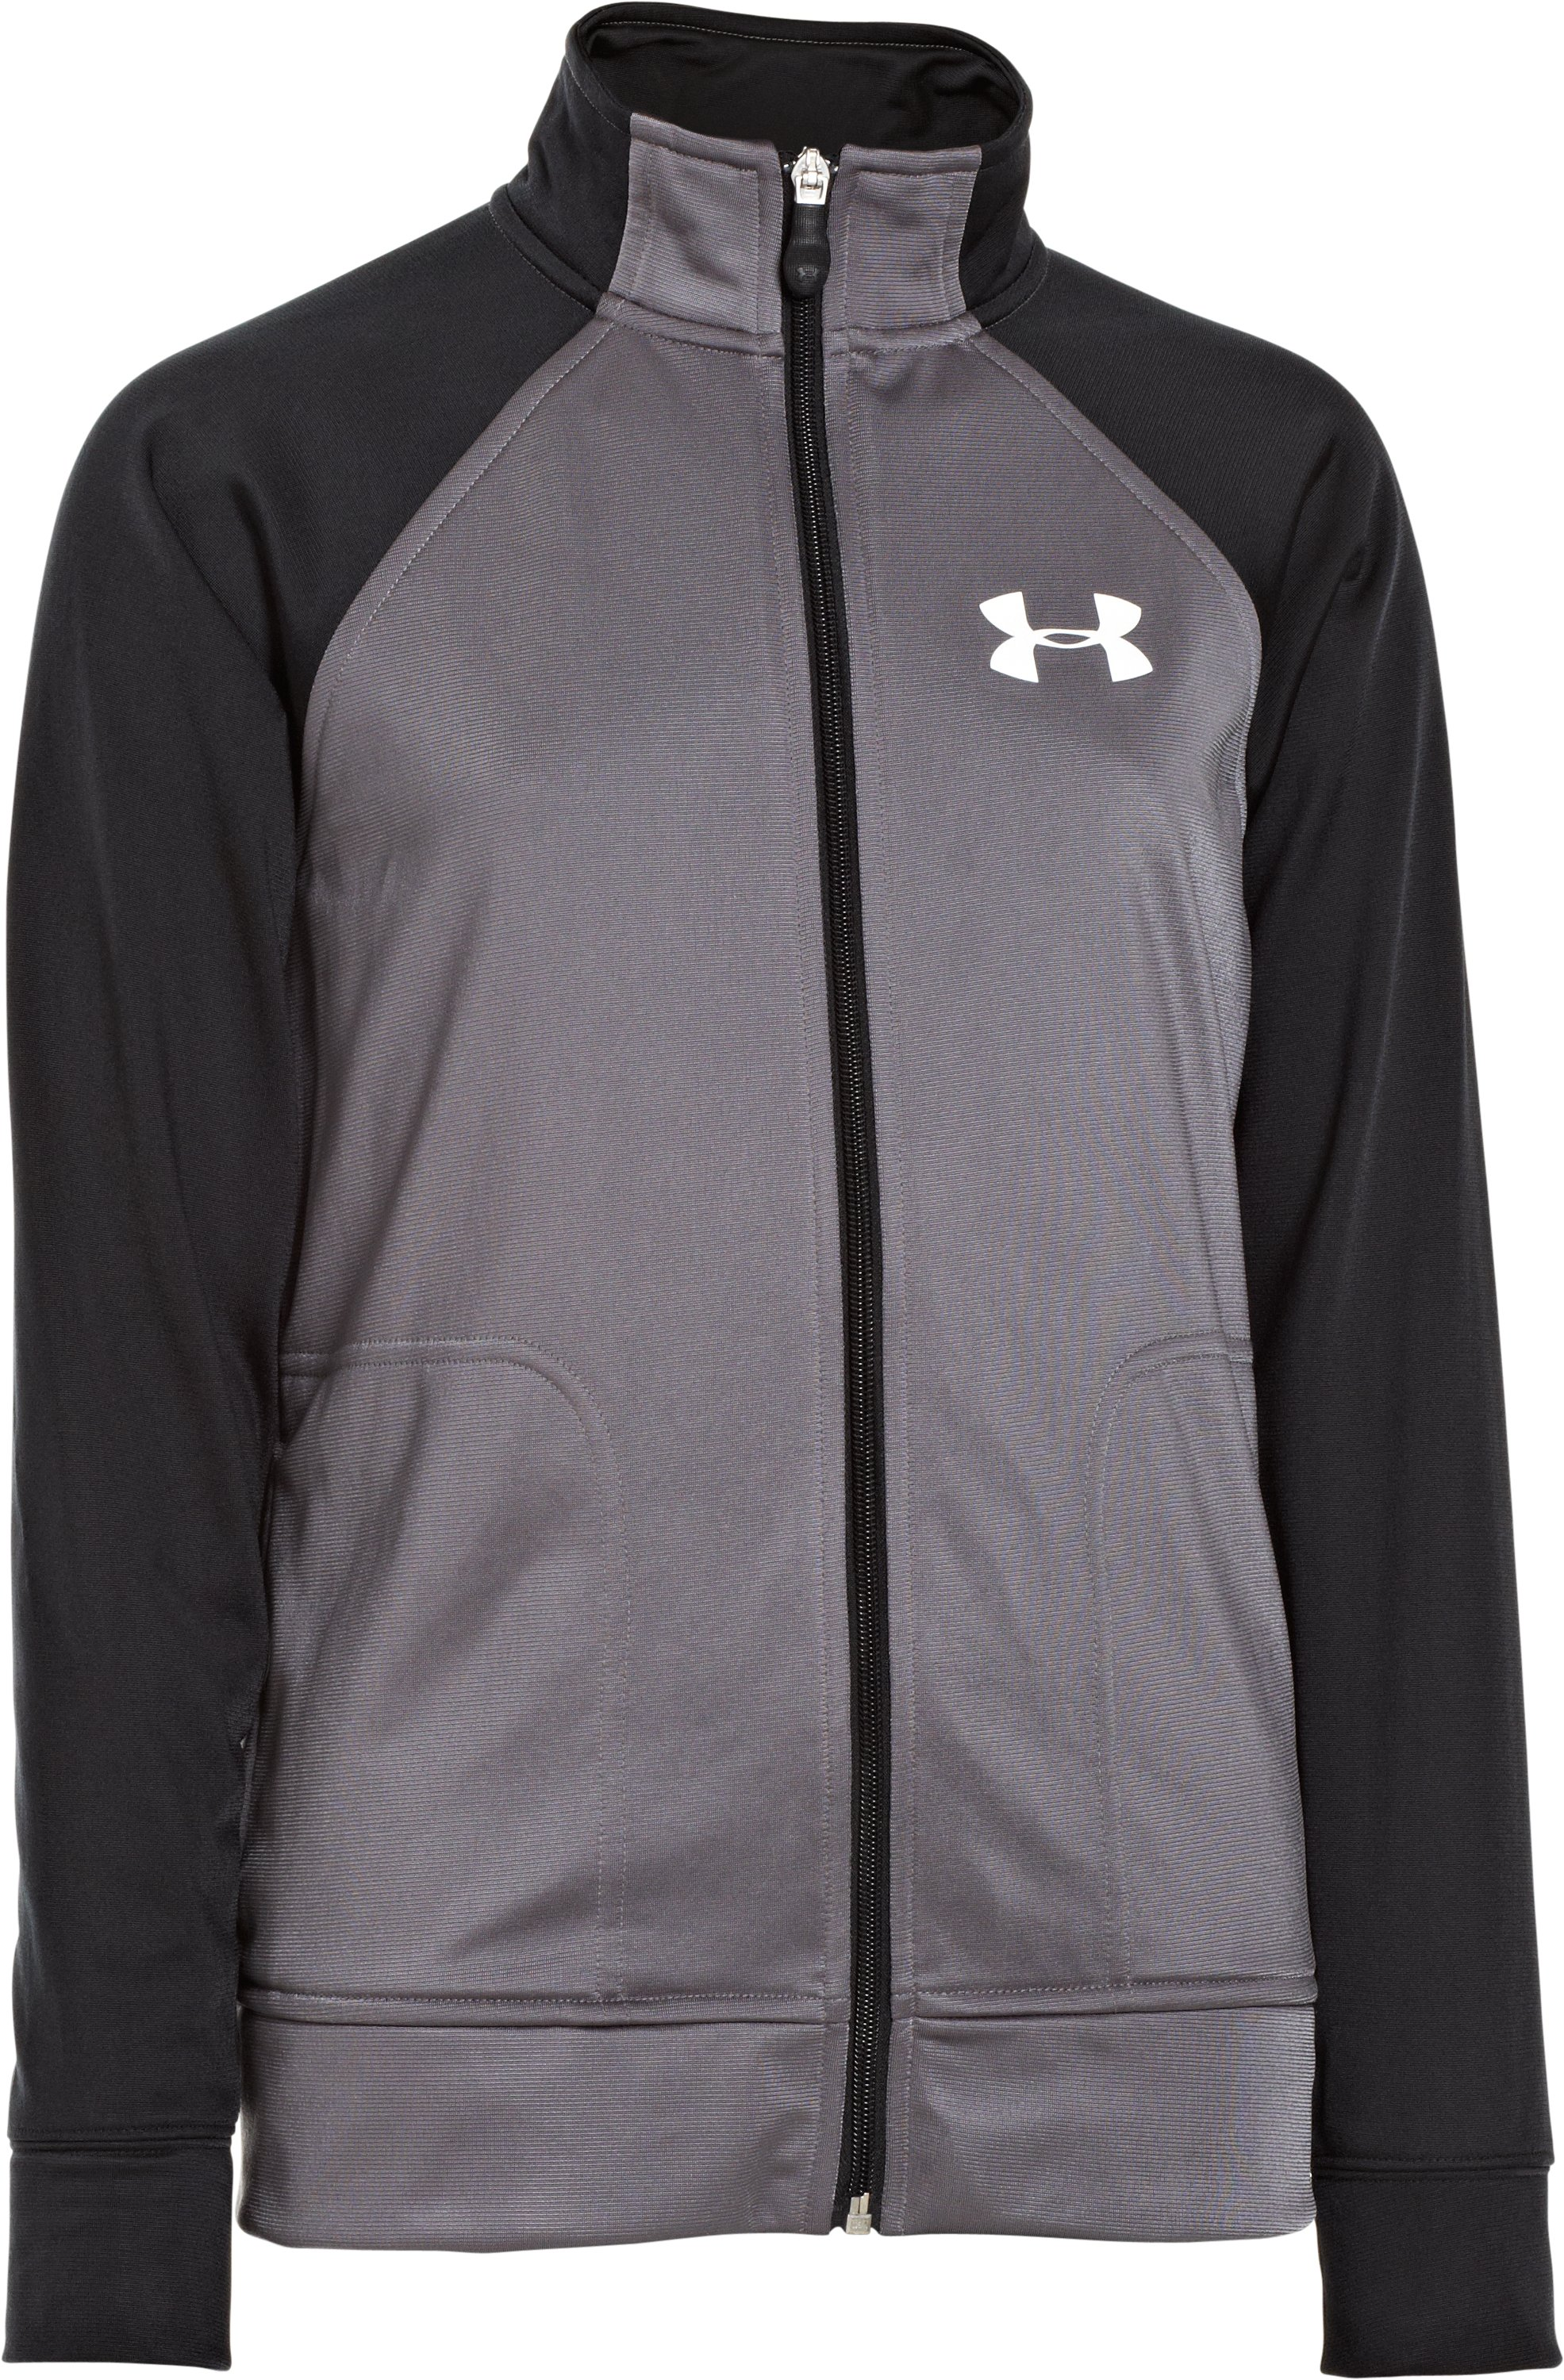 Boys' UA Brawler Knit Warm-Up Jacket 2.0, Graphite